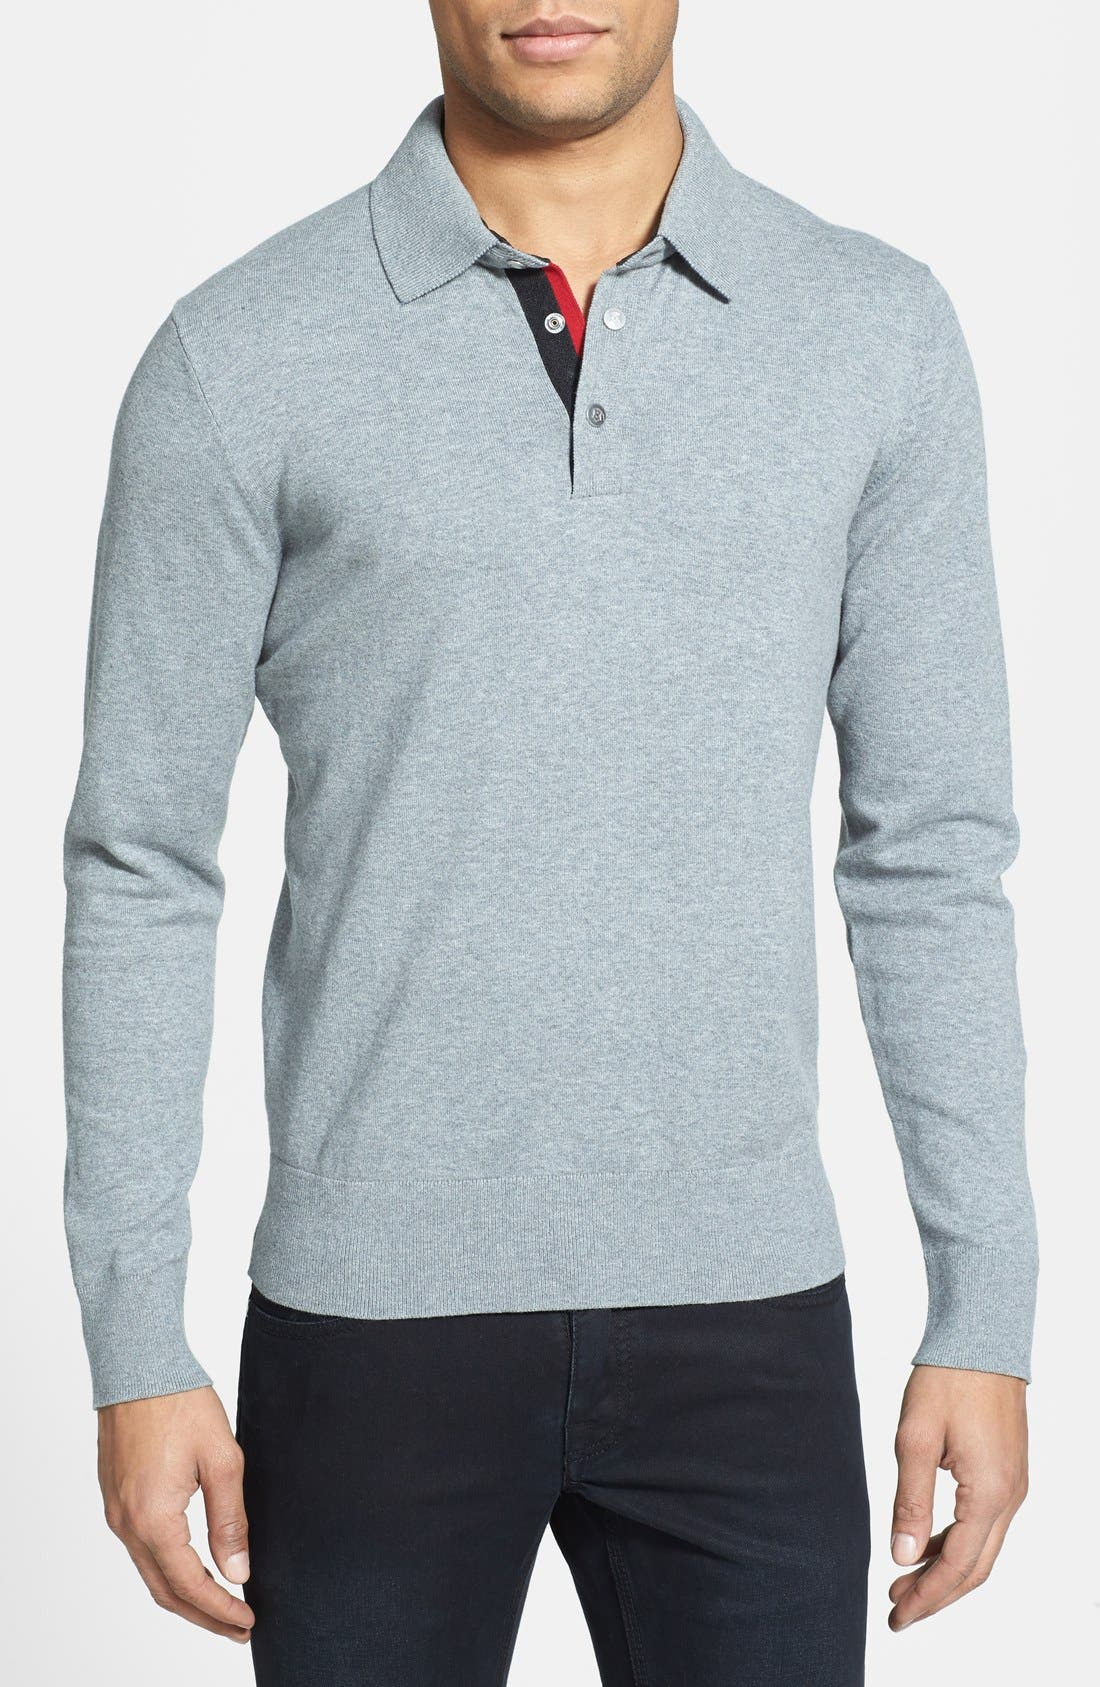 Alternate Image 1 Selected - Victorinox Swiss Army® 'Roche' Tailored Fit Stretch Polo Sweater